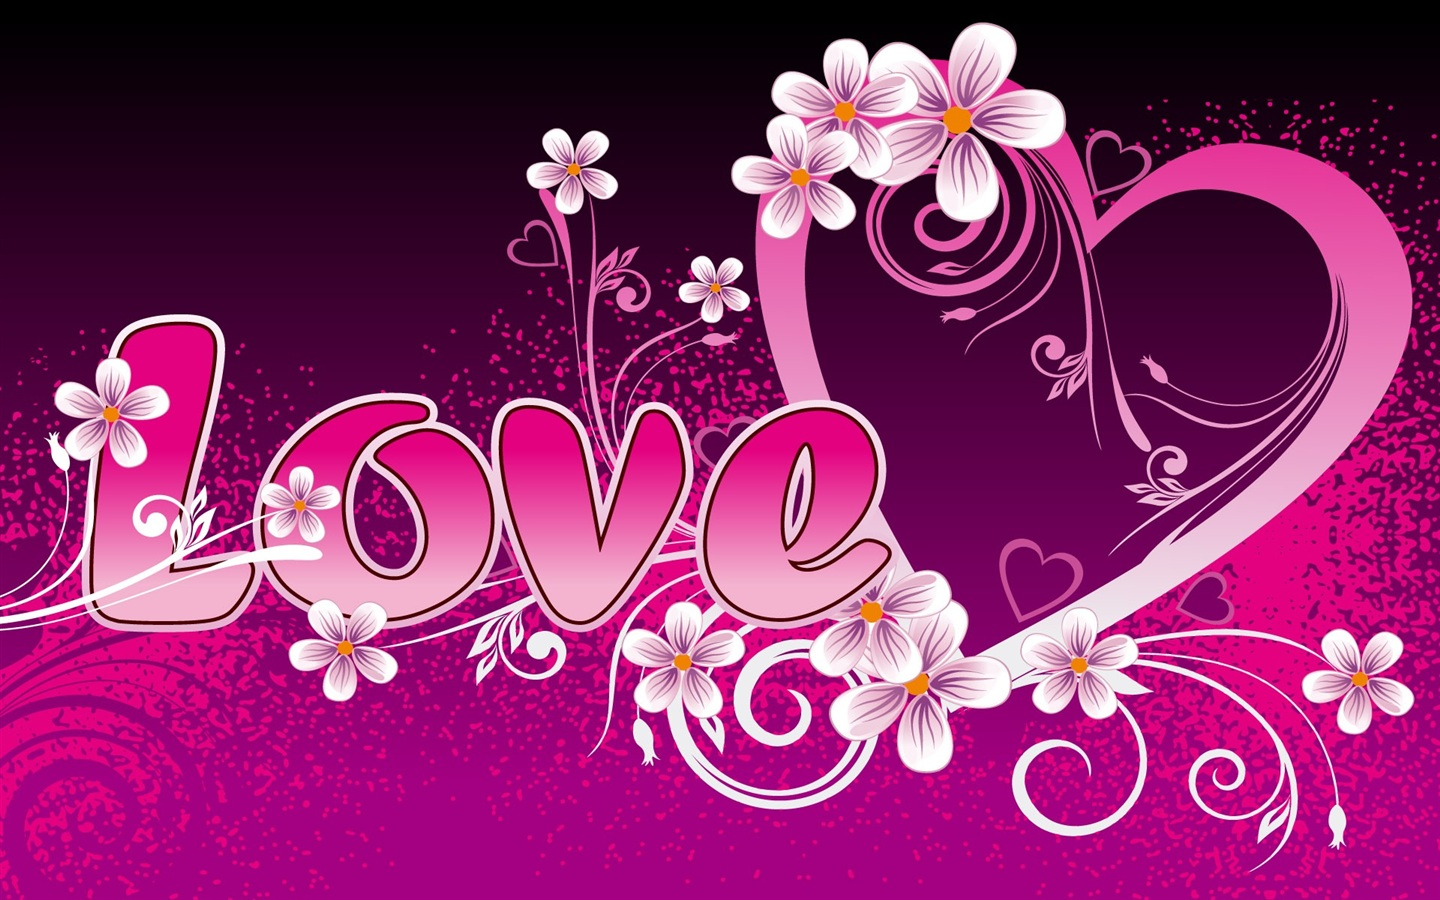 Love and love the flowers around the heart shaped Wallpaper | 1440x900 ...